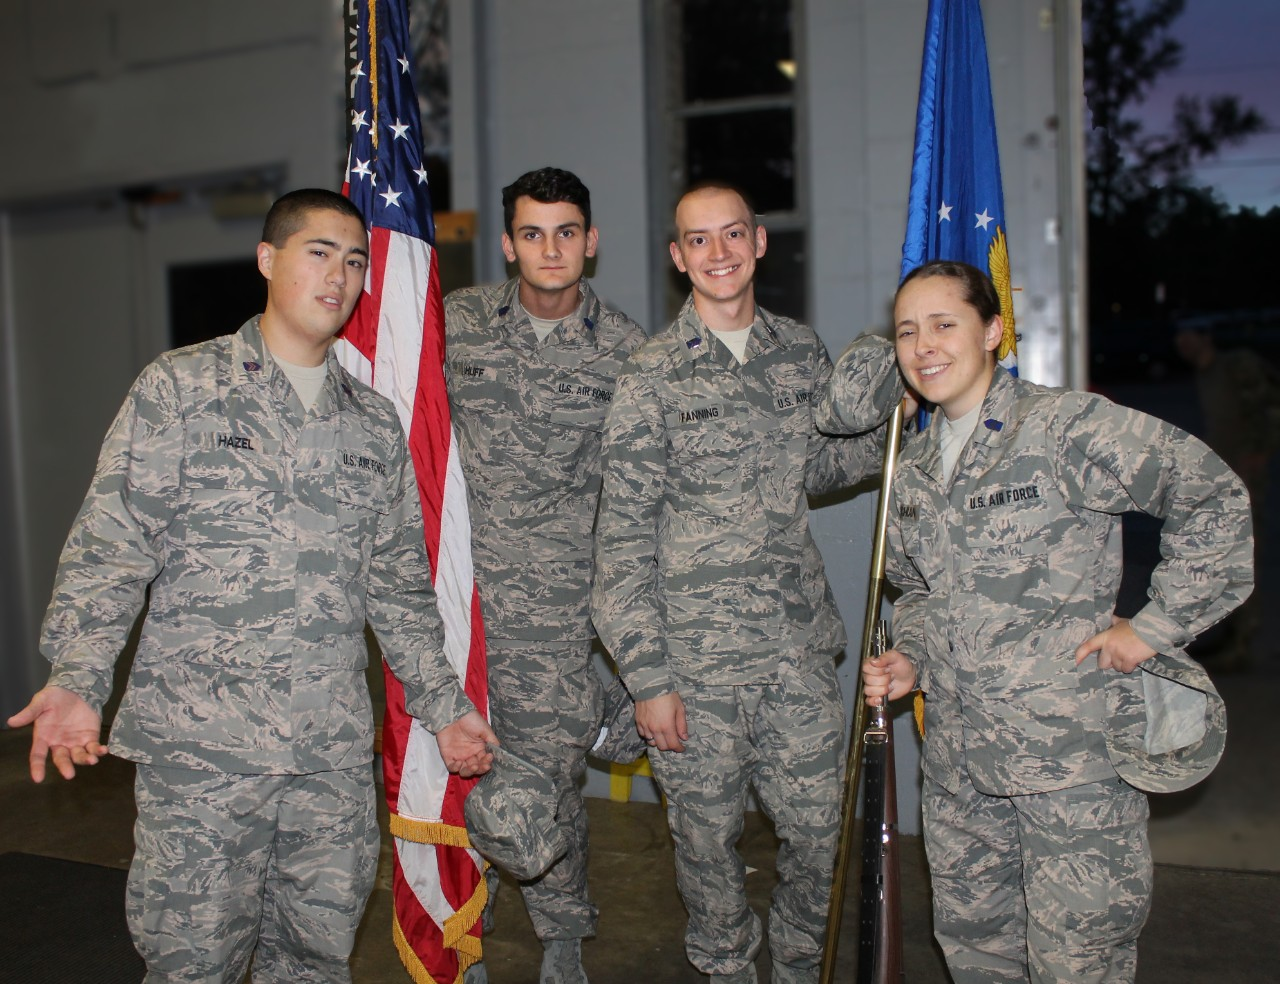 Fanning and three ROTC cadets posing with American flag, all in military camoflage attire.